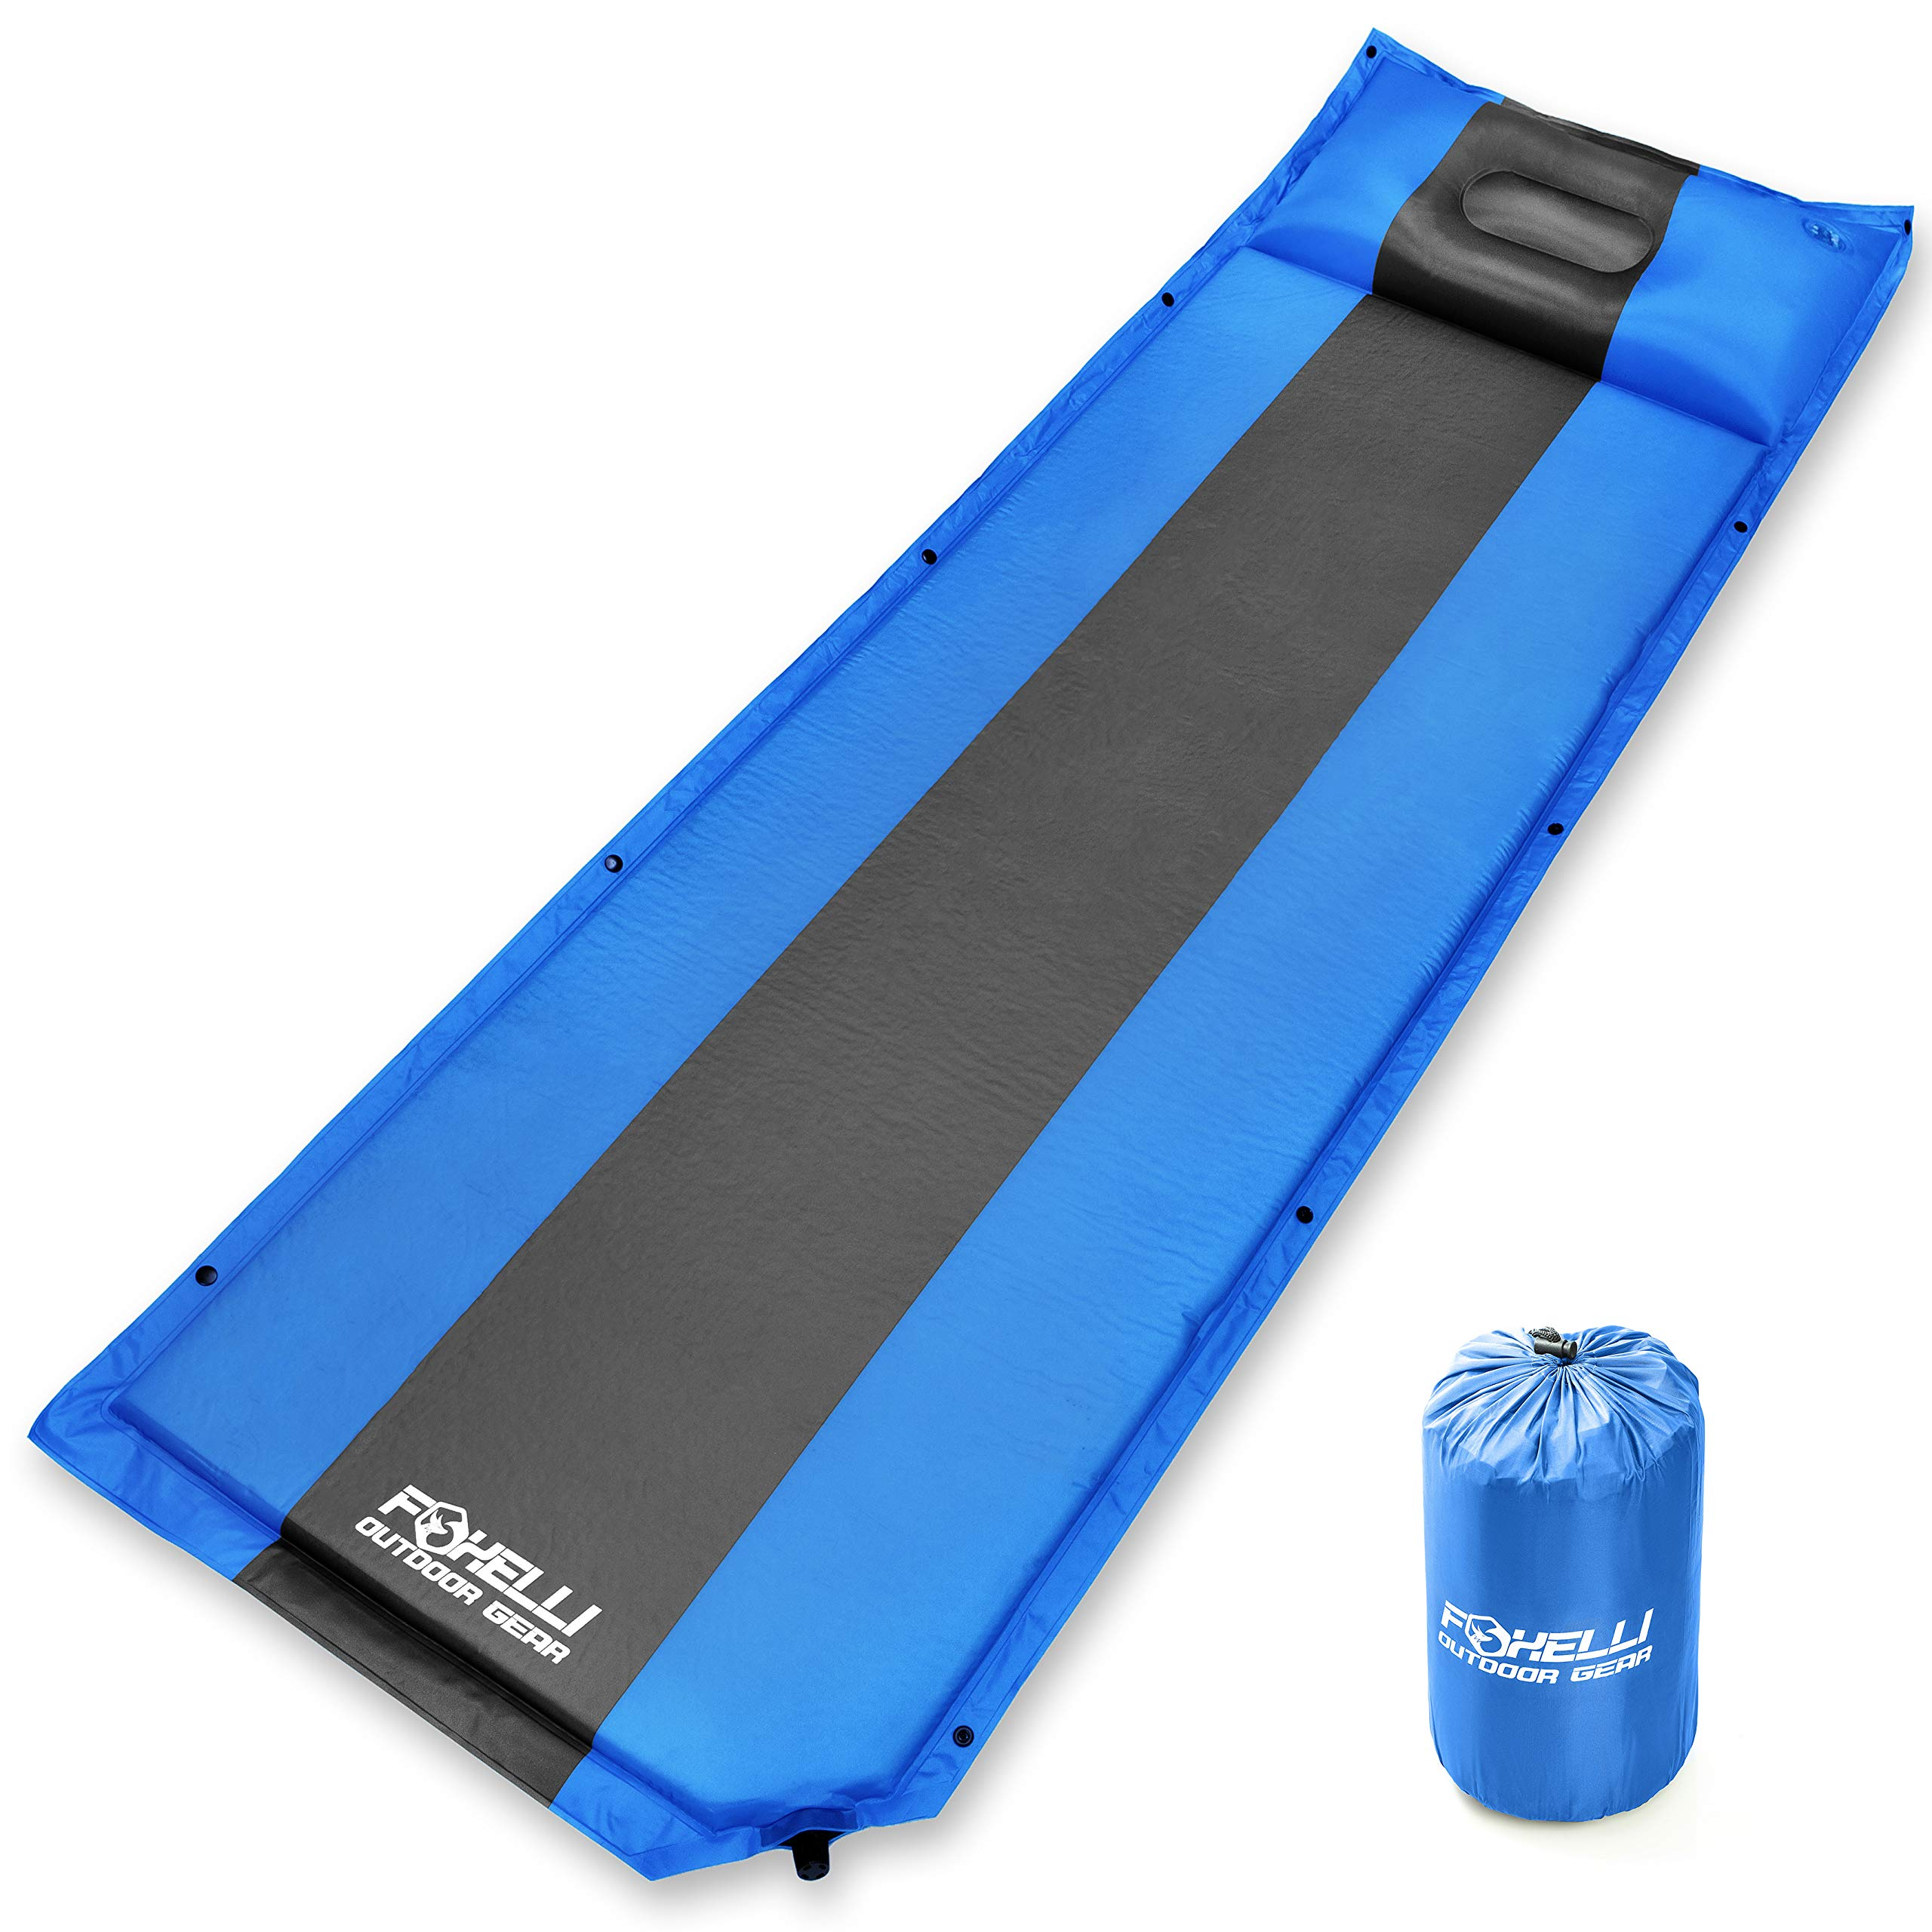 Foxelli Sleeping Pad - Comfortable & Compact Self Inflating Sleeping Mat with Pillow, Lightweight, Moisture-Proof Camping Pad, Perfect for Hiking & Backpacking by Foxelli